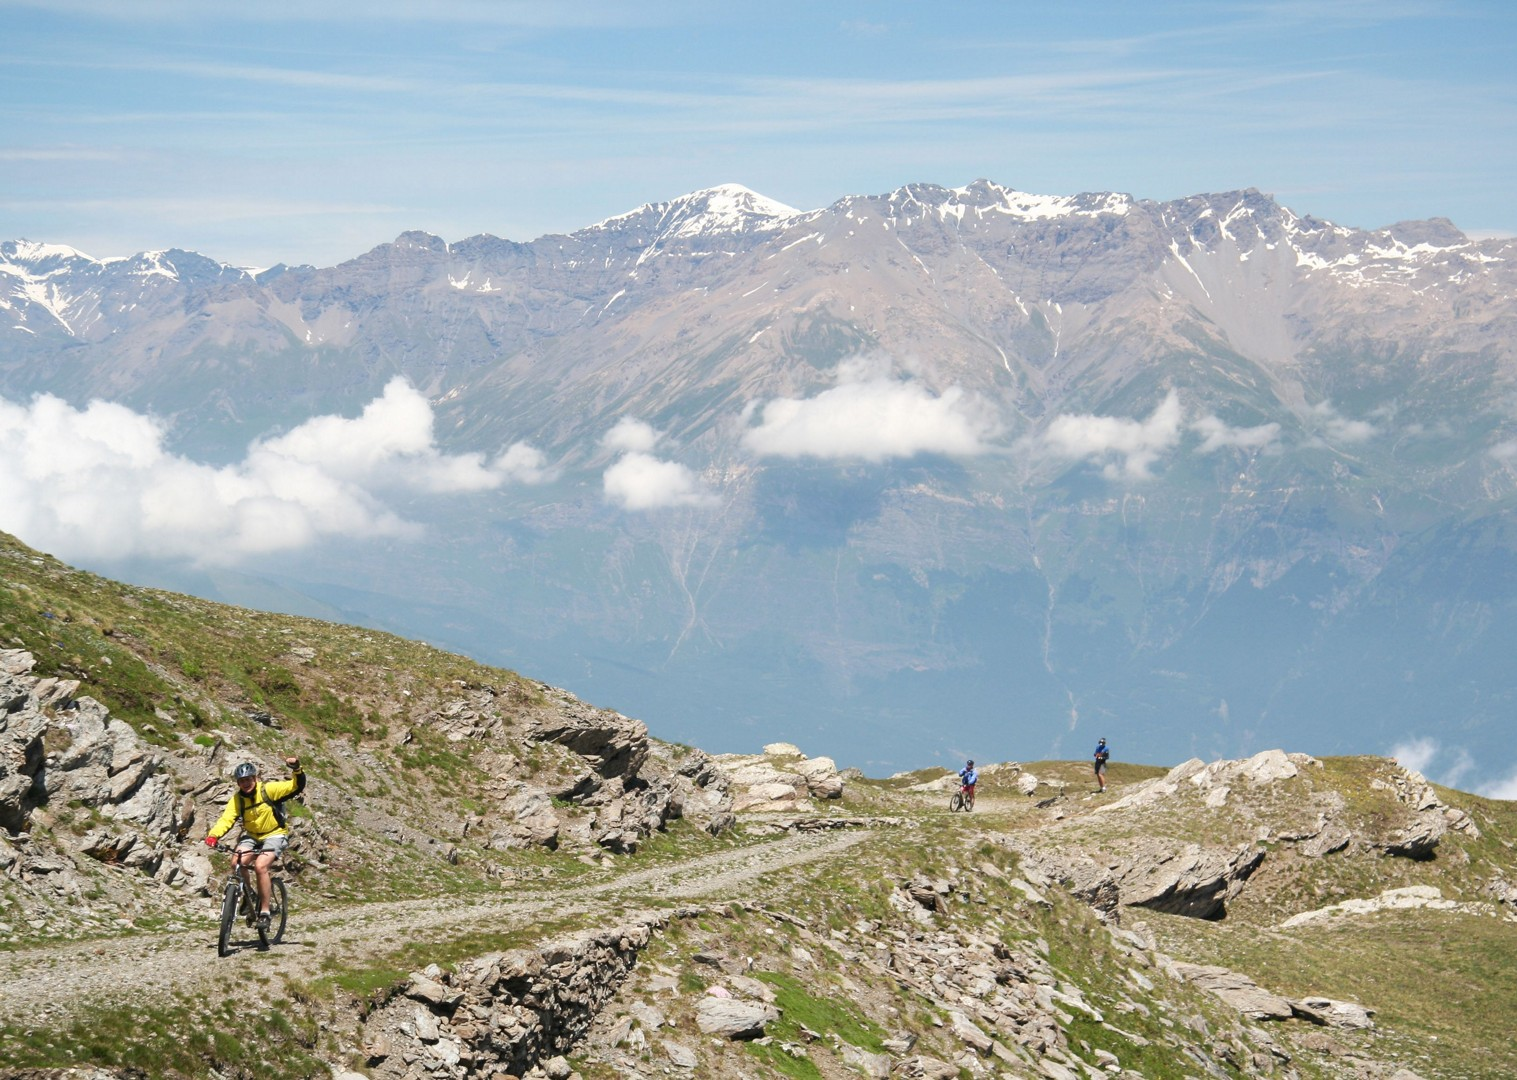 vanoise-national-park-guided-mountain-bike-holiday-italy-and-france-alpine-adventure.JPG - Italy and France - Alpine Adventure - Mountain Biking